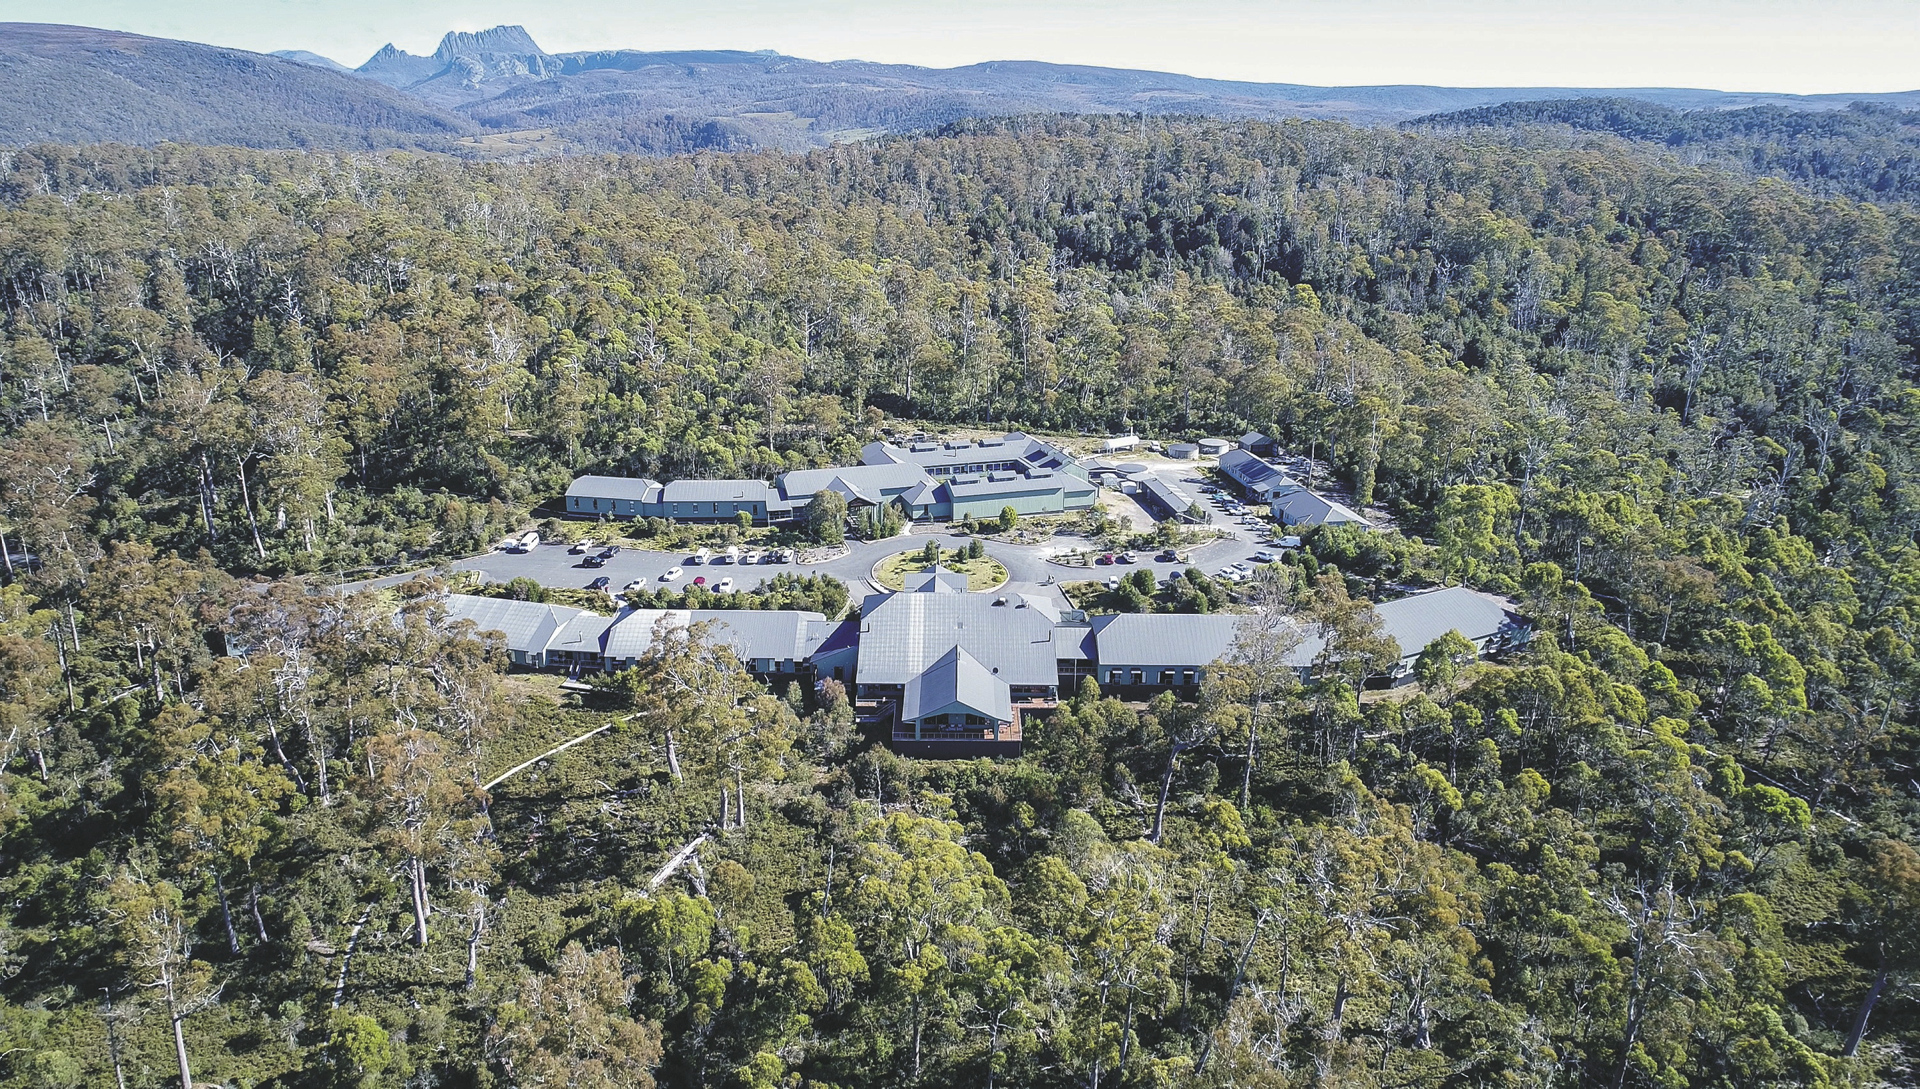 Cradle Mountain Hotel, ©@ohne